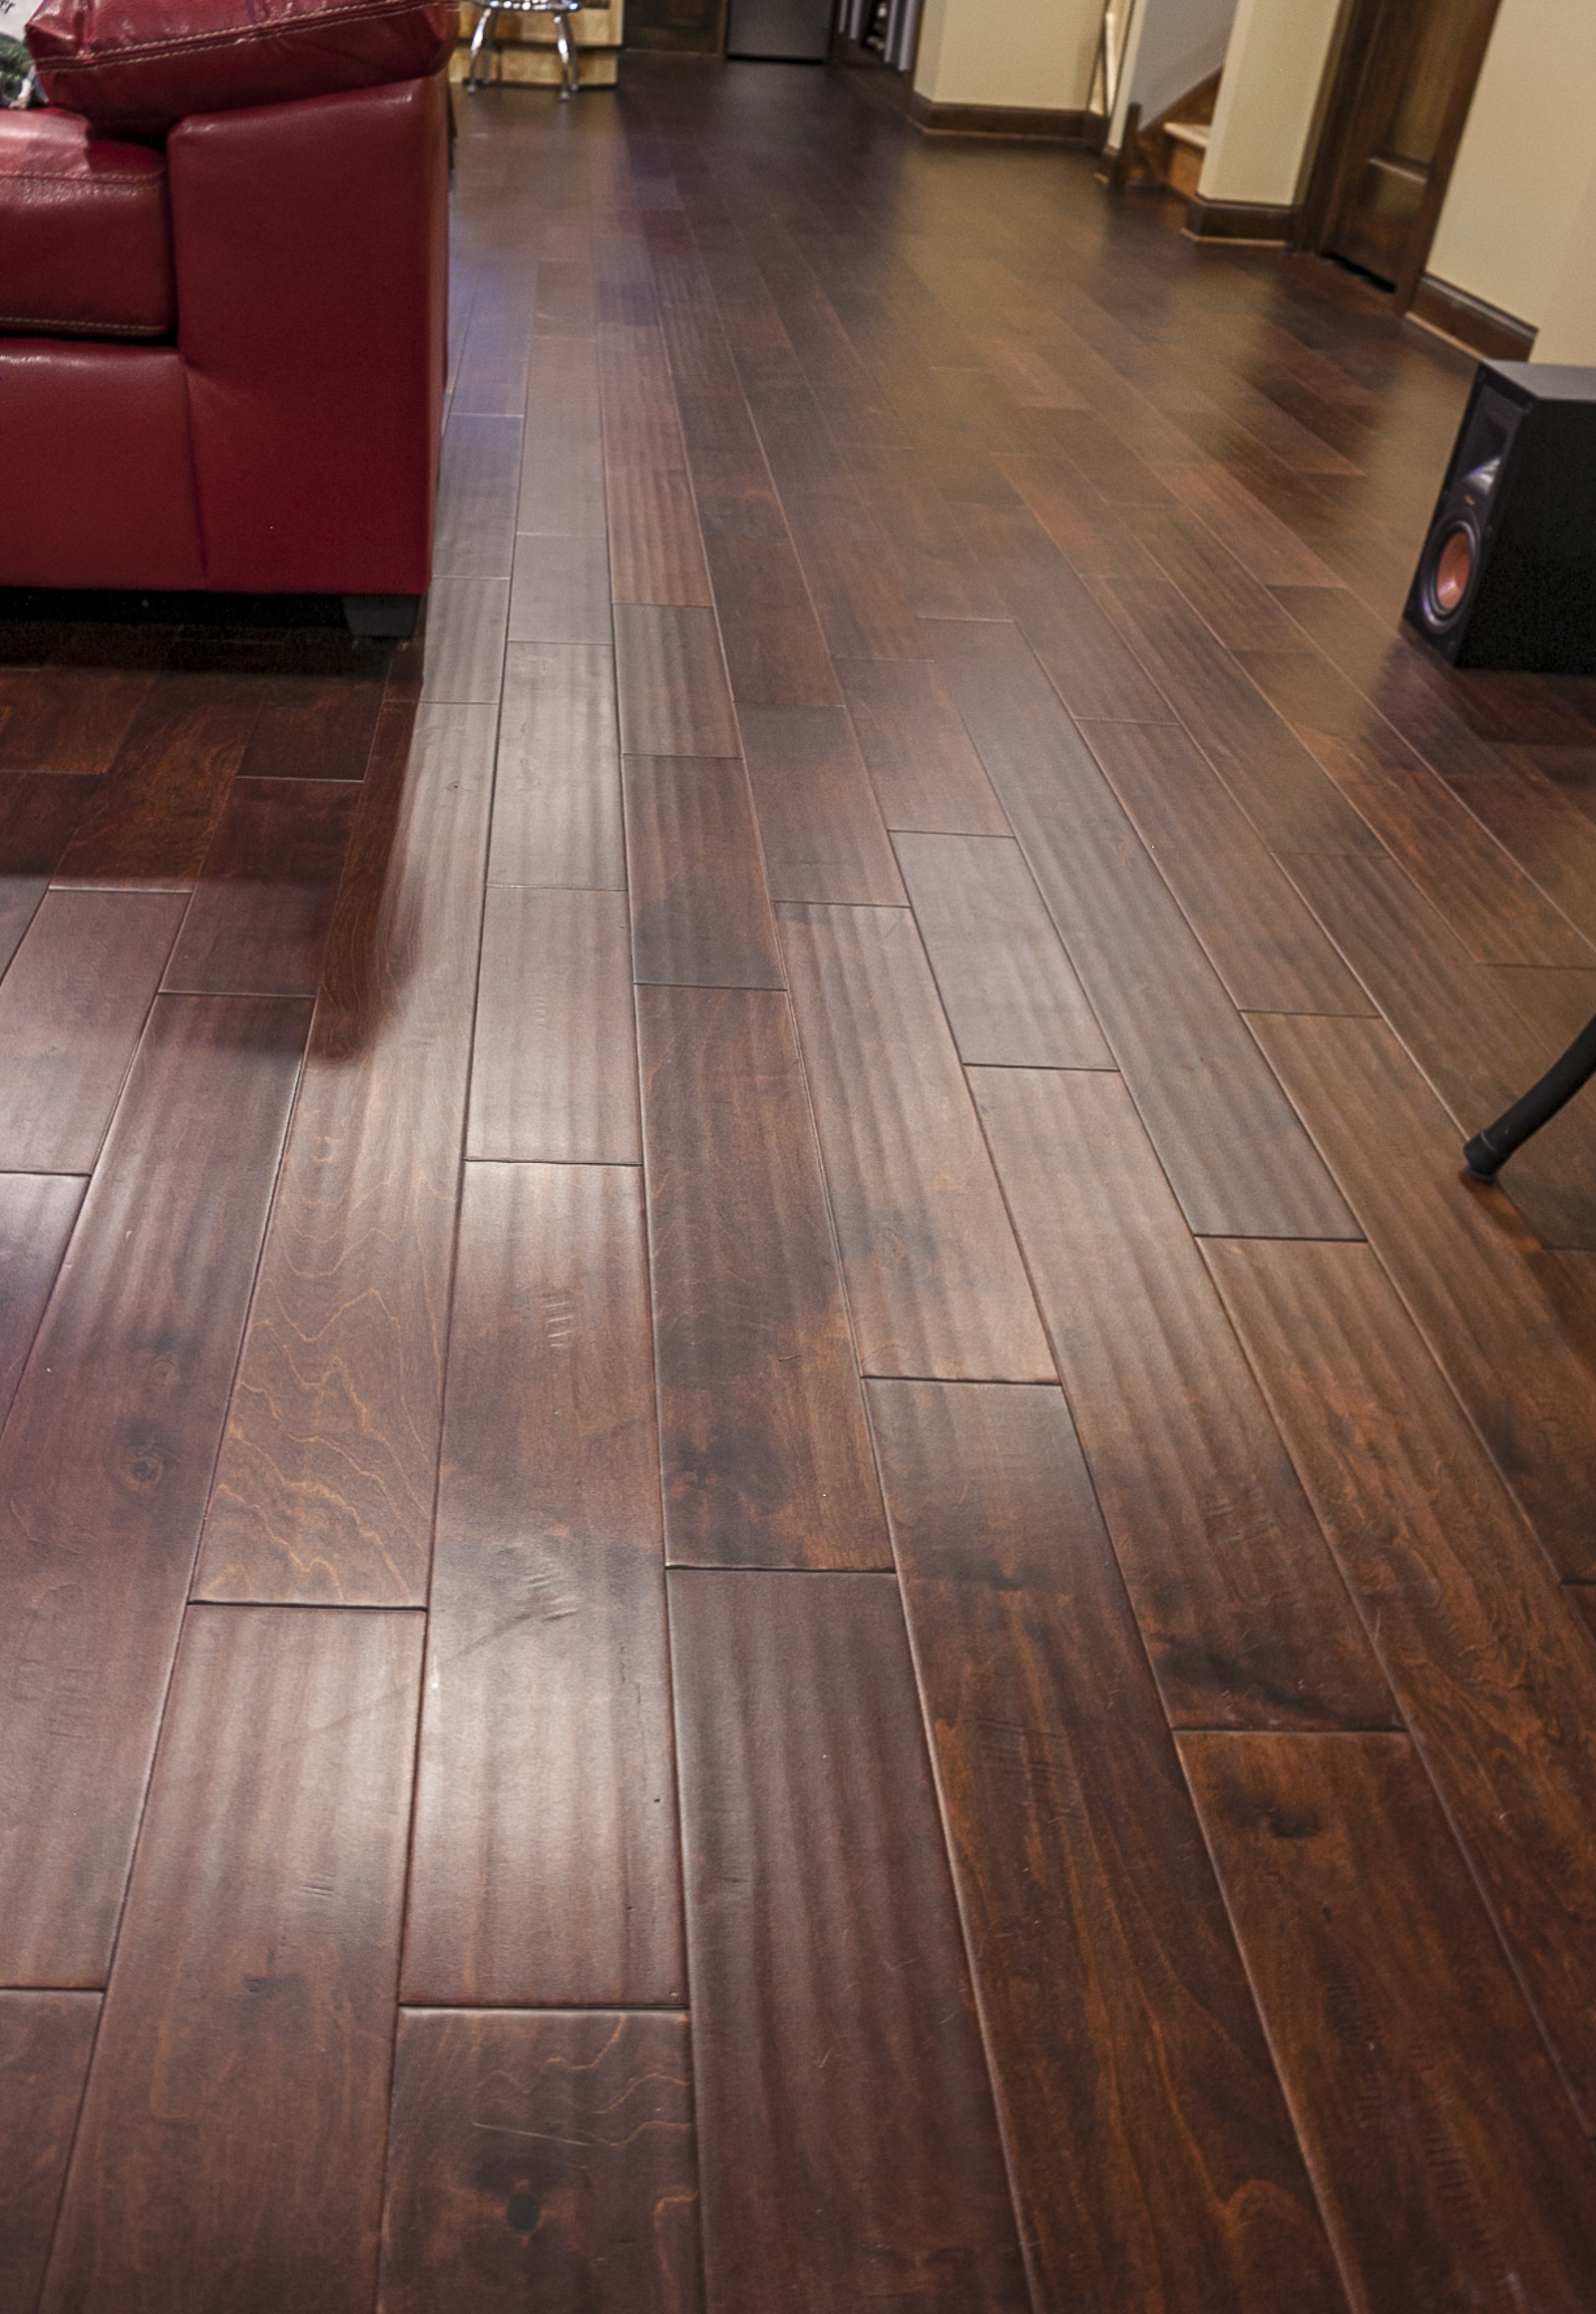 Dark Laminate Flooring Mirrors The Natural Hickory In Kitchen Adding Contrast And Warmth To Room